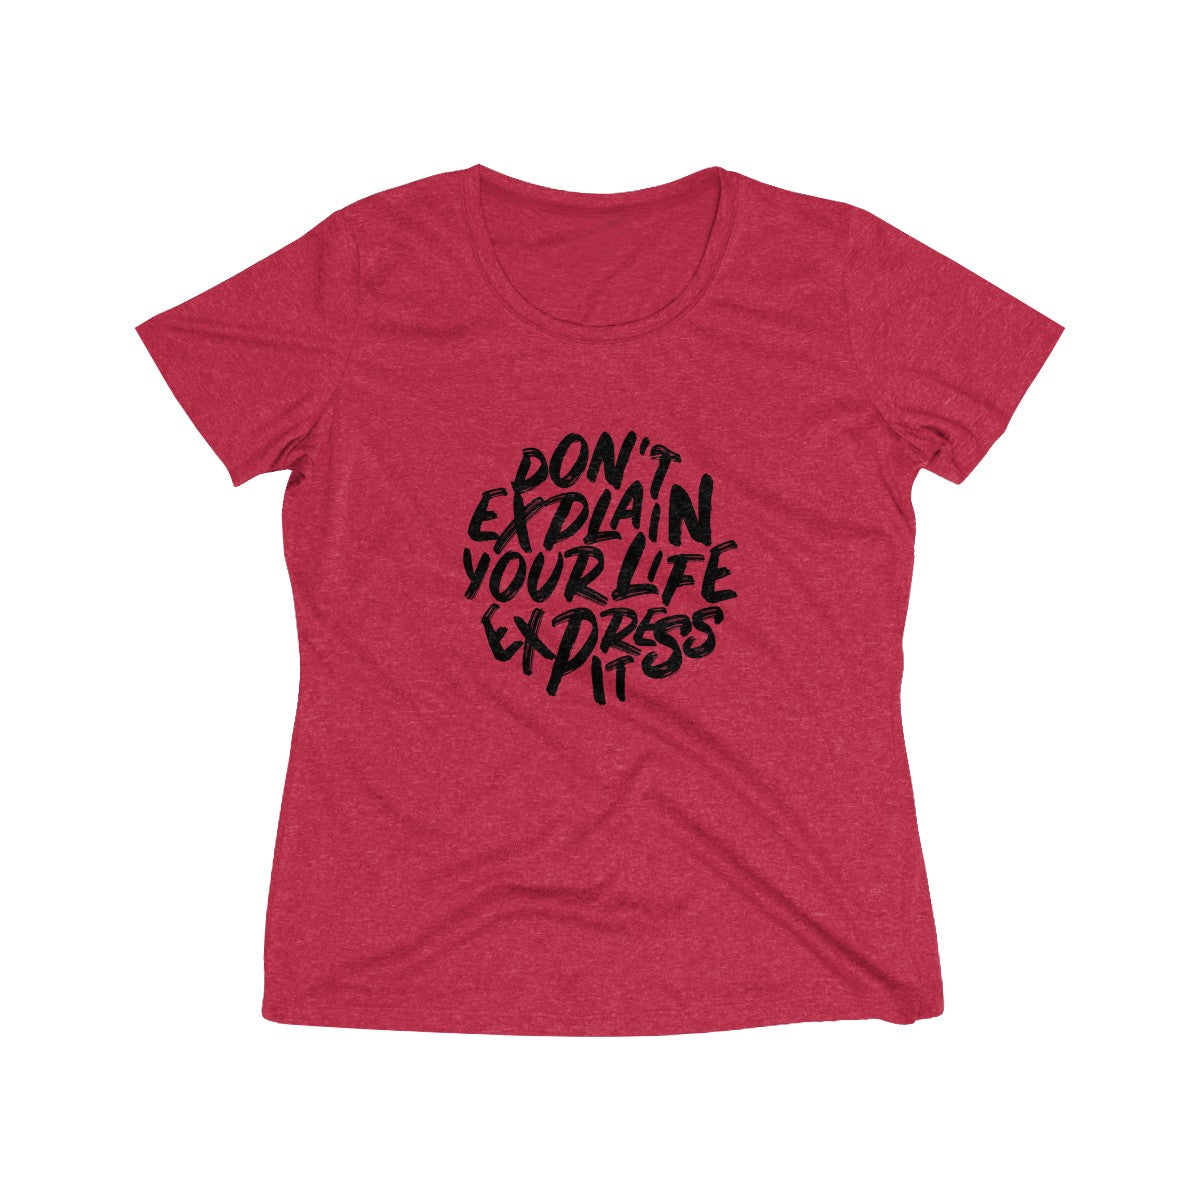 Dont Explain Your Life Express It Women's Heather Wicking Tee